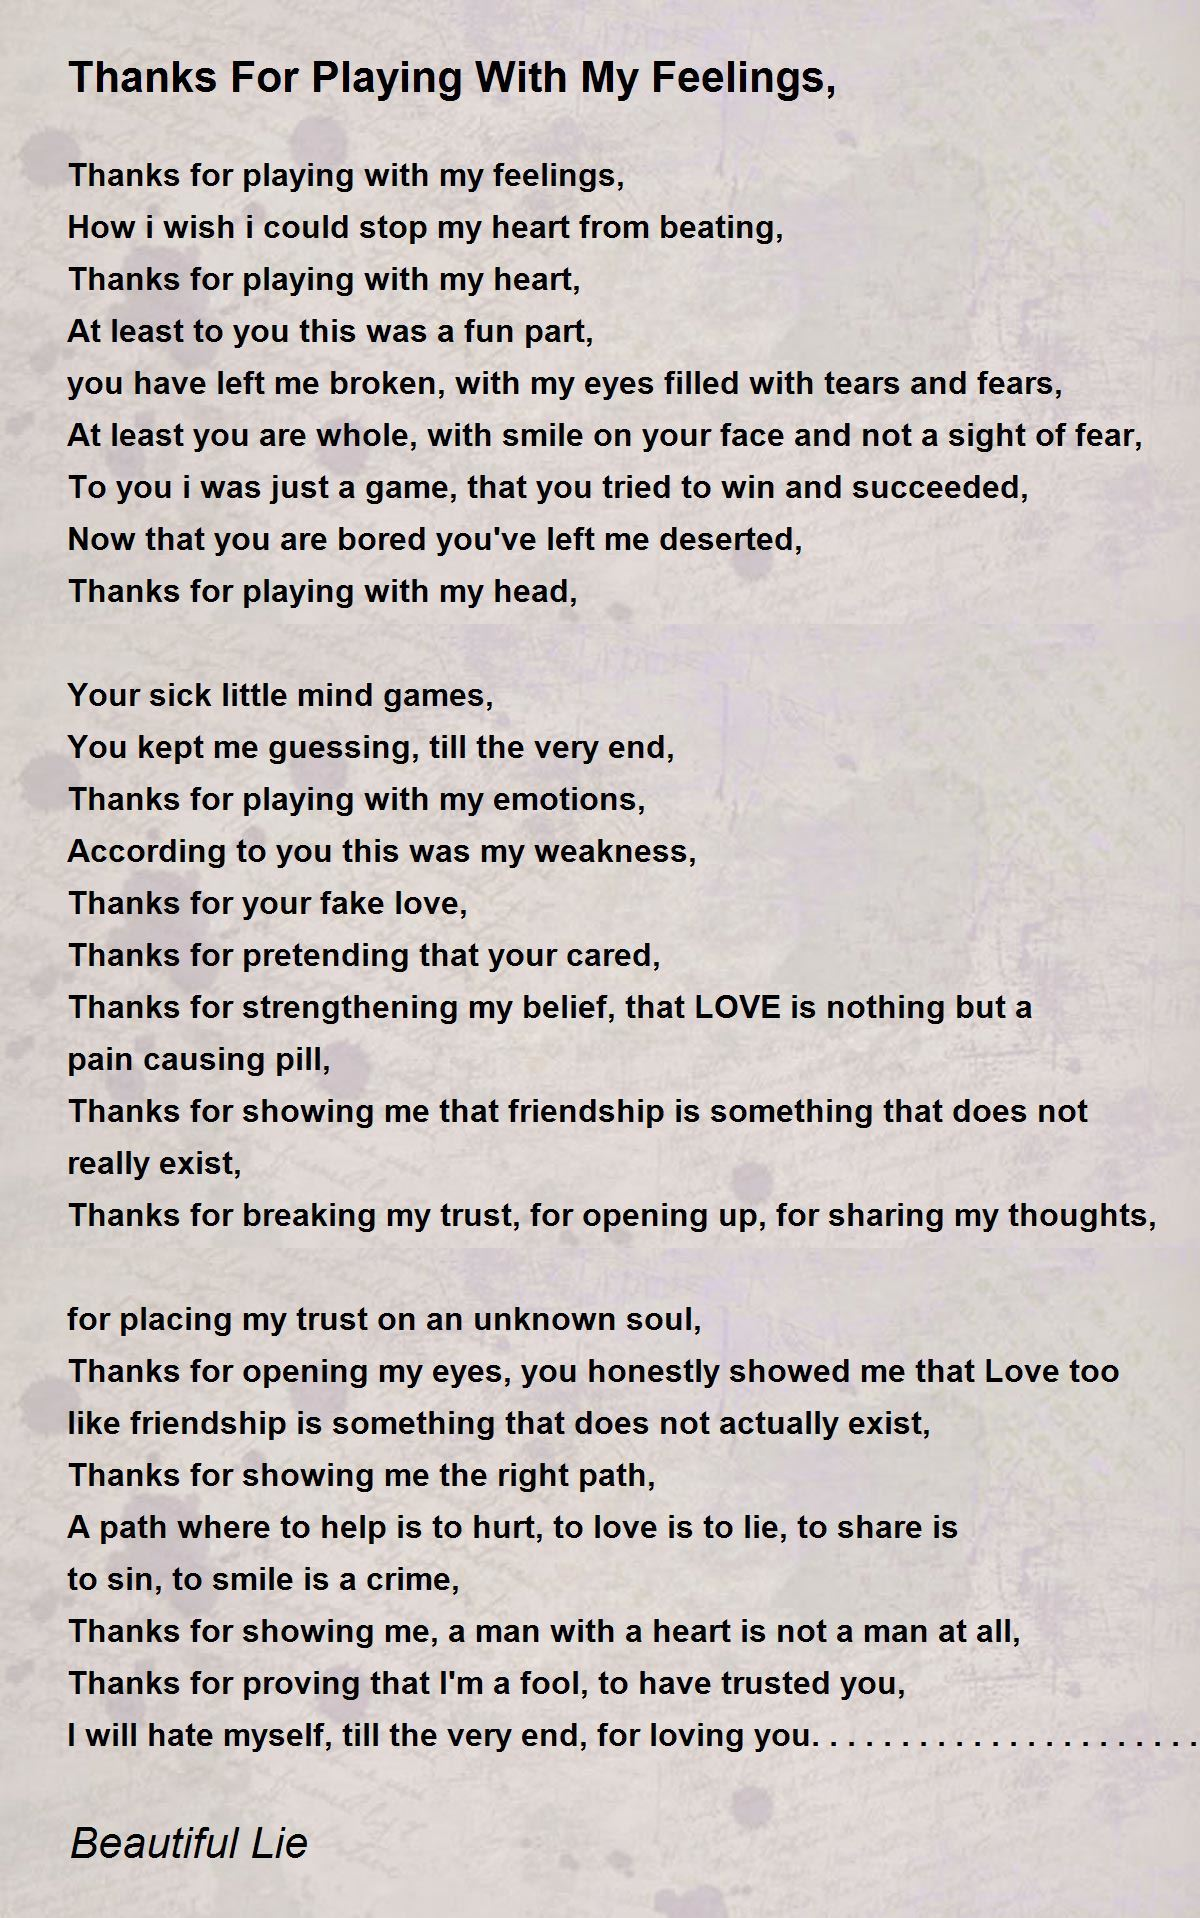 Thanks For Playing With My Feelings Poem By Beautiful Lie Poem Hunter